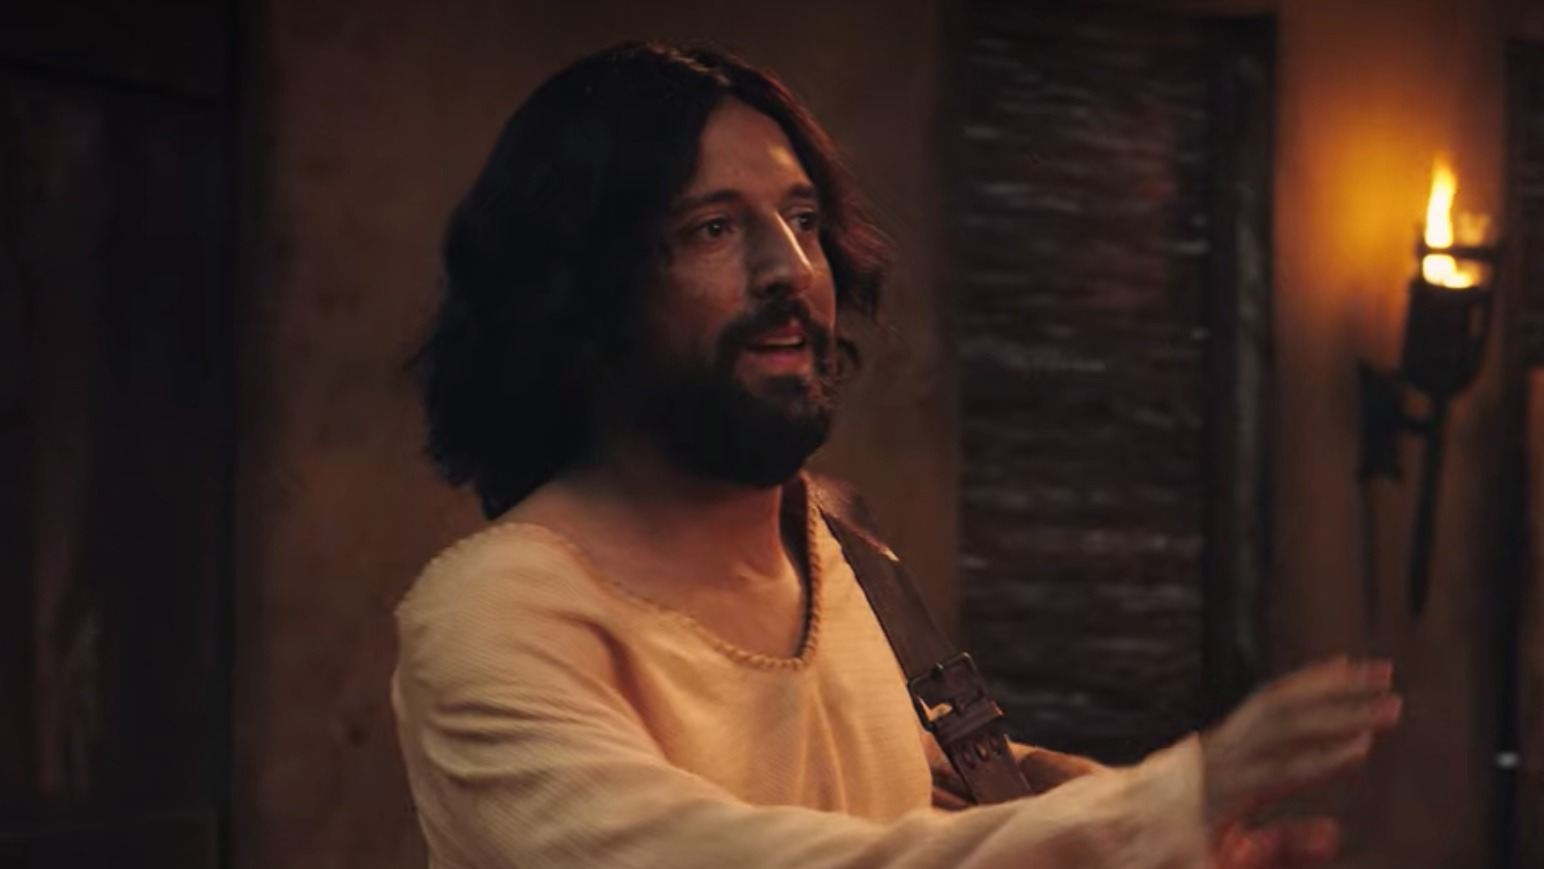 STILL UP. The Brazilian Netflix film 'The First Temptation of Christ' depicts Jesus returning home with his boyfriend Orlando after 40 days in the desert. Screenshot from trailer